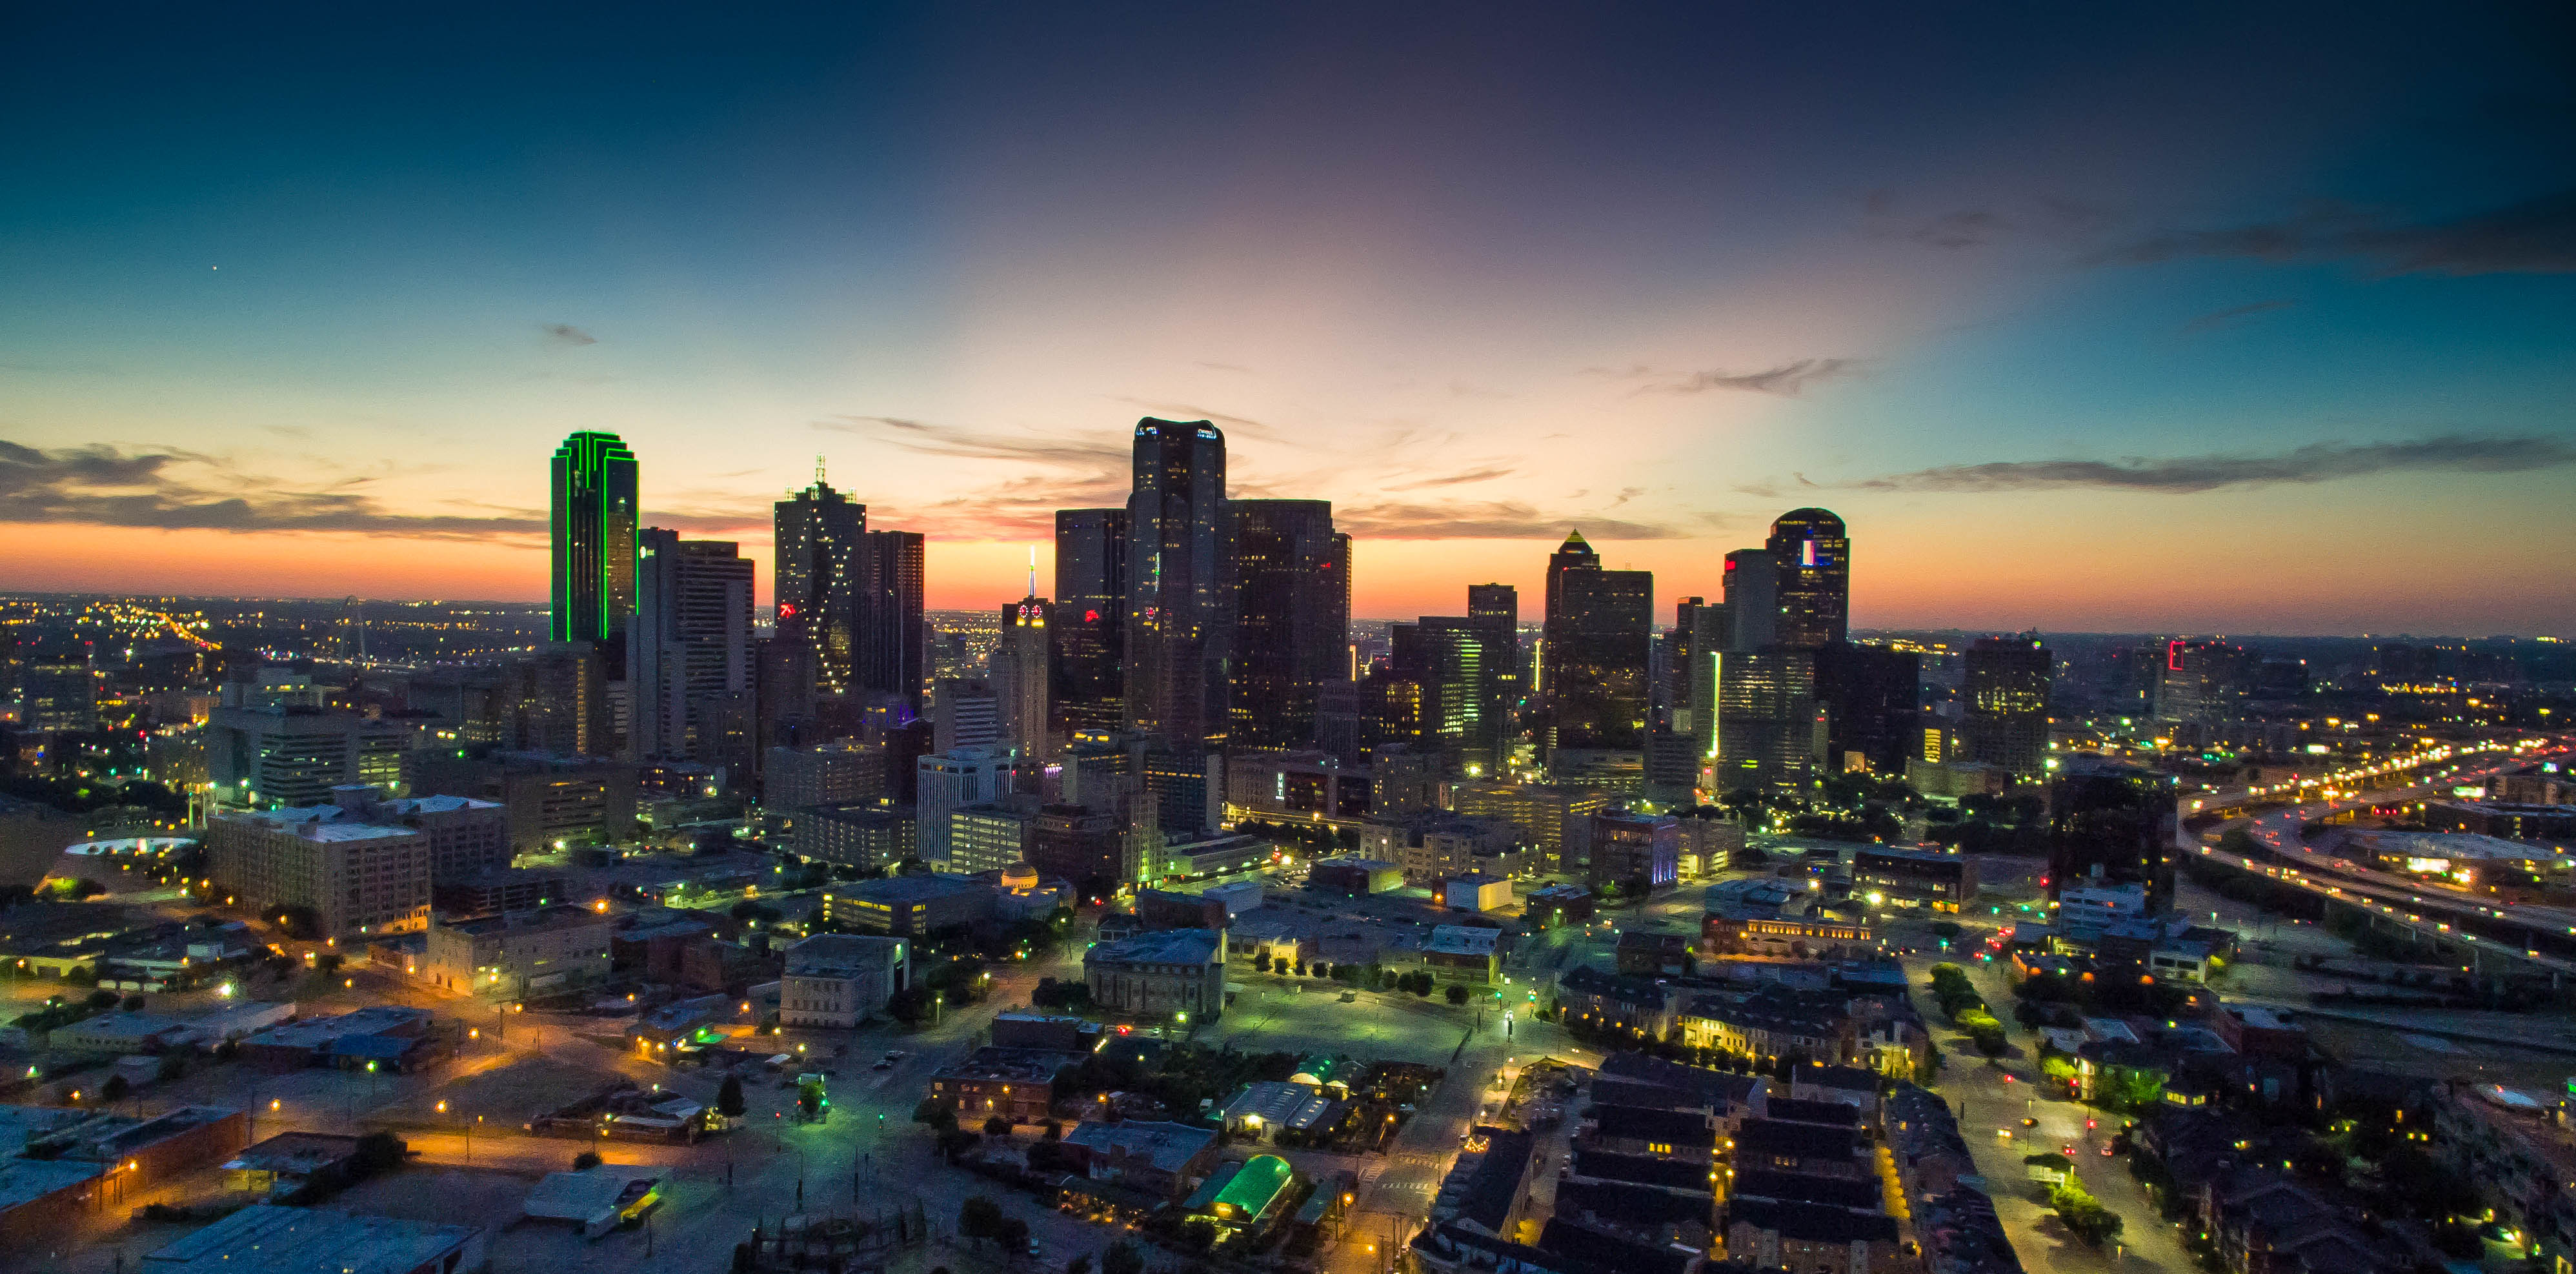 The Dallas skyline from the east in July 2015. (Creative Commons photo by Daxis)